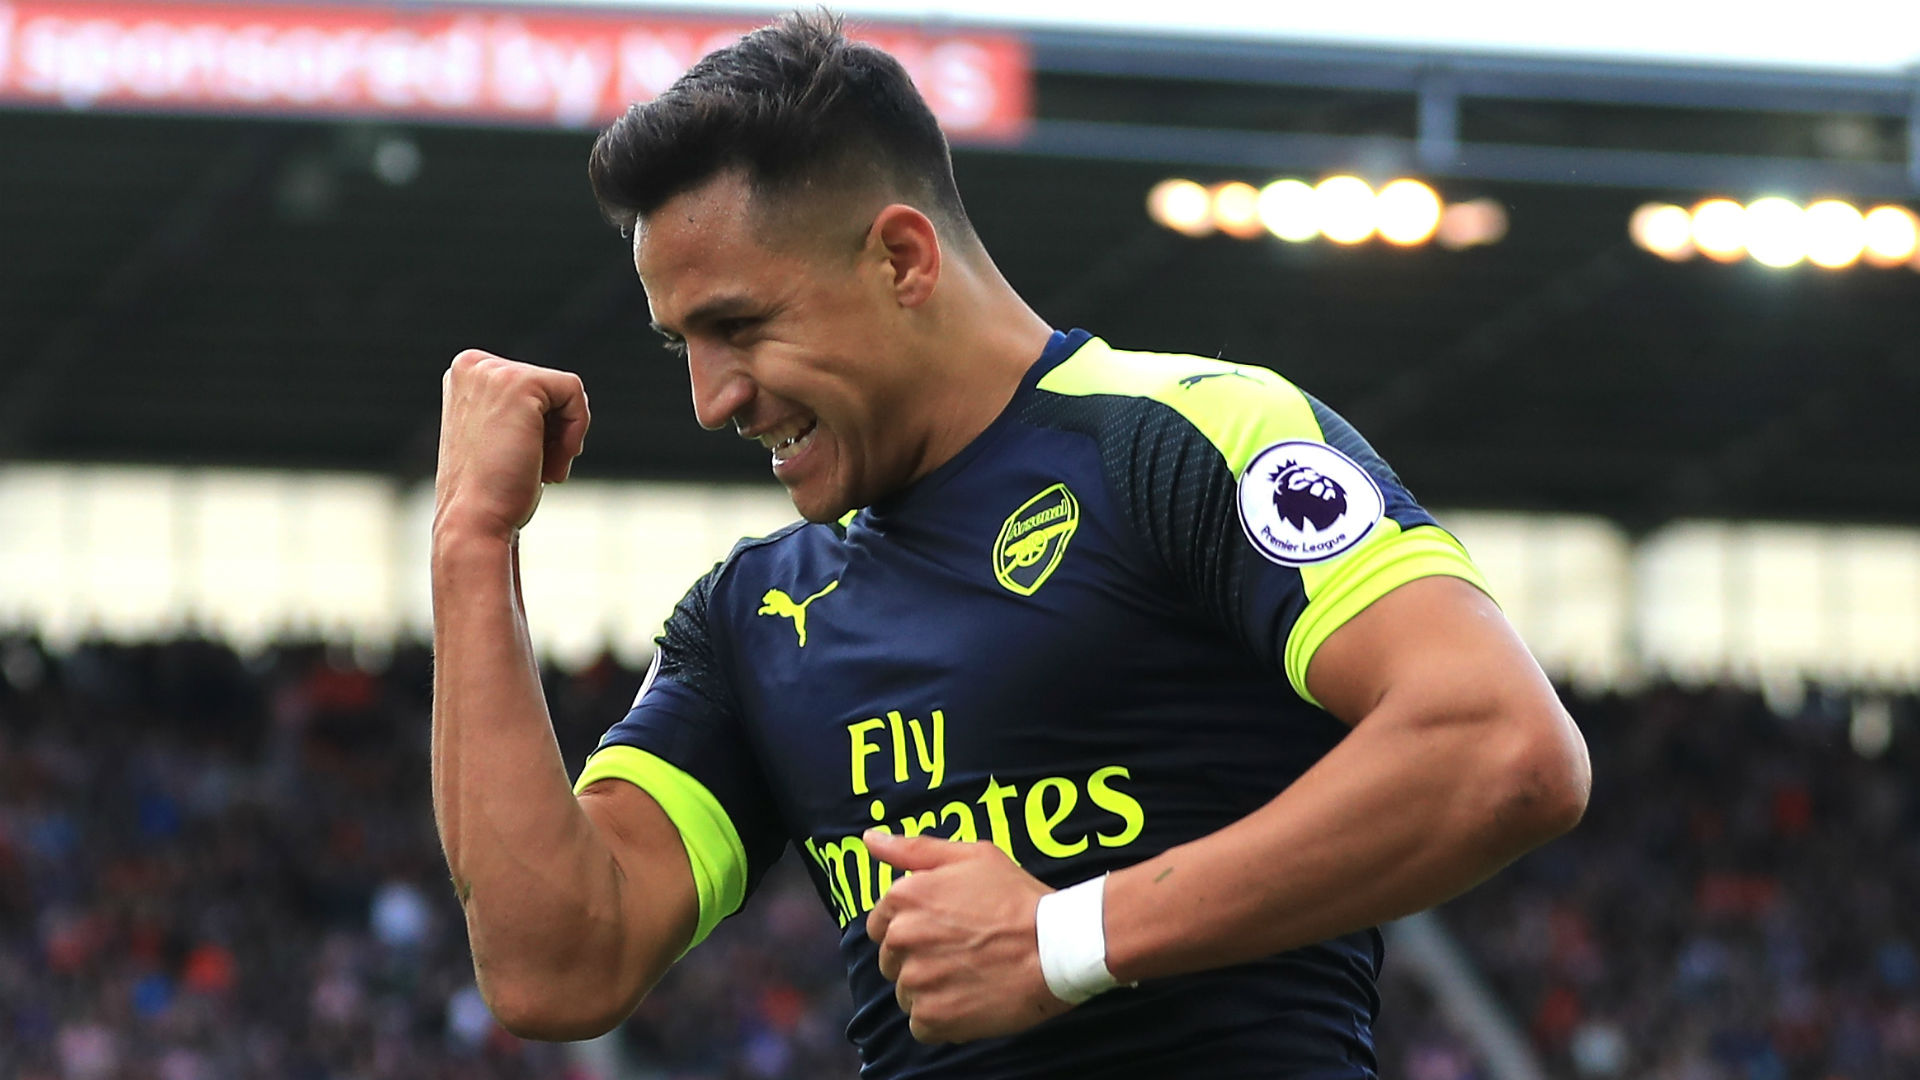 Arsene Wenger reveals Alexis Sanchez doubtful for Arsenal's game with Sunderland